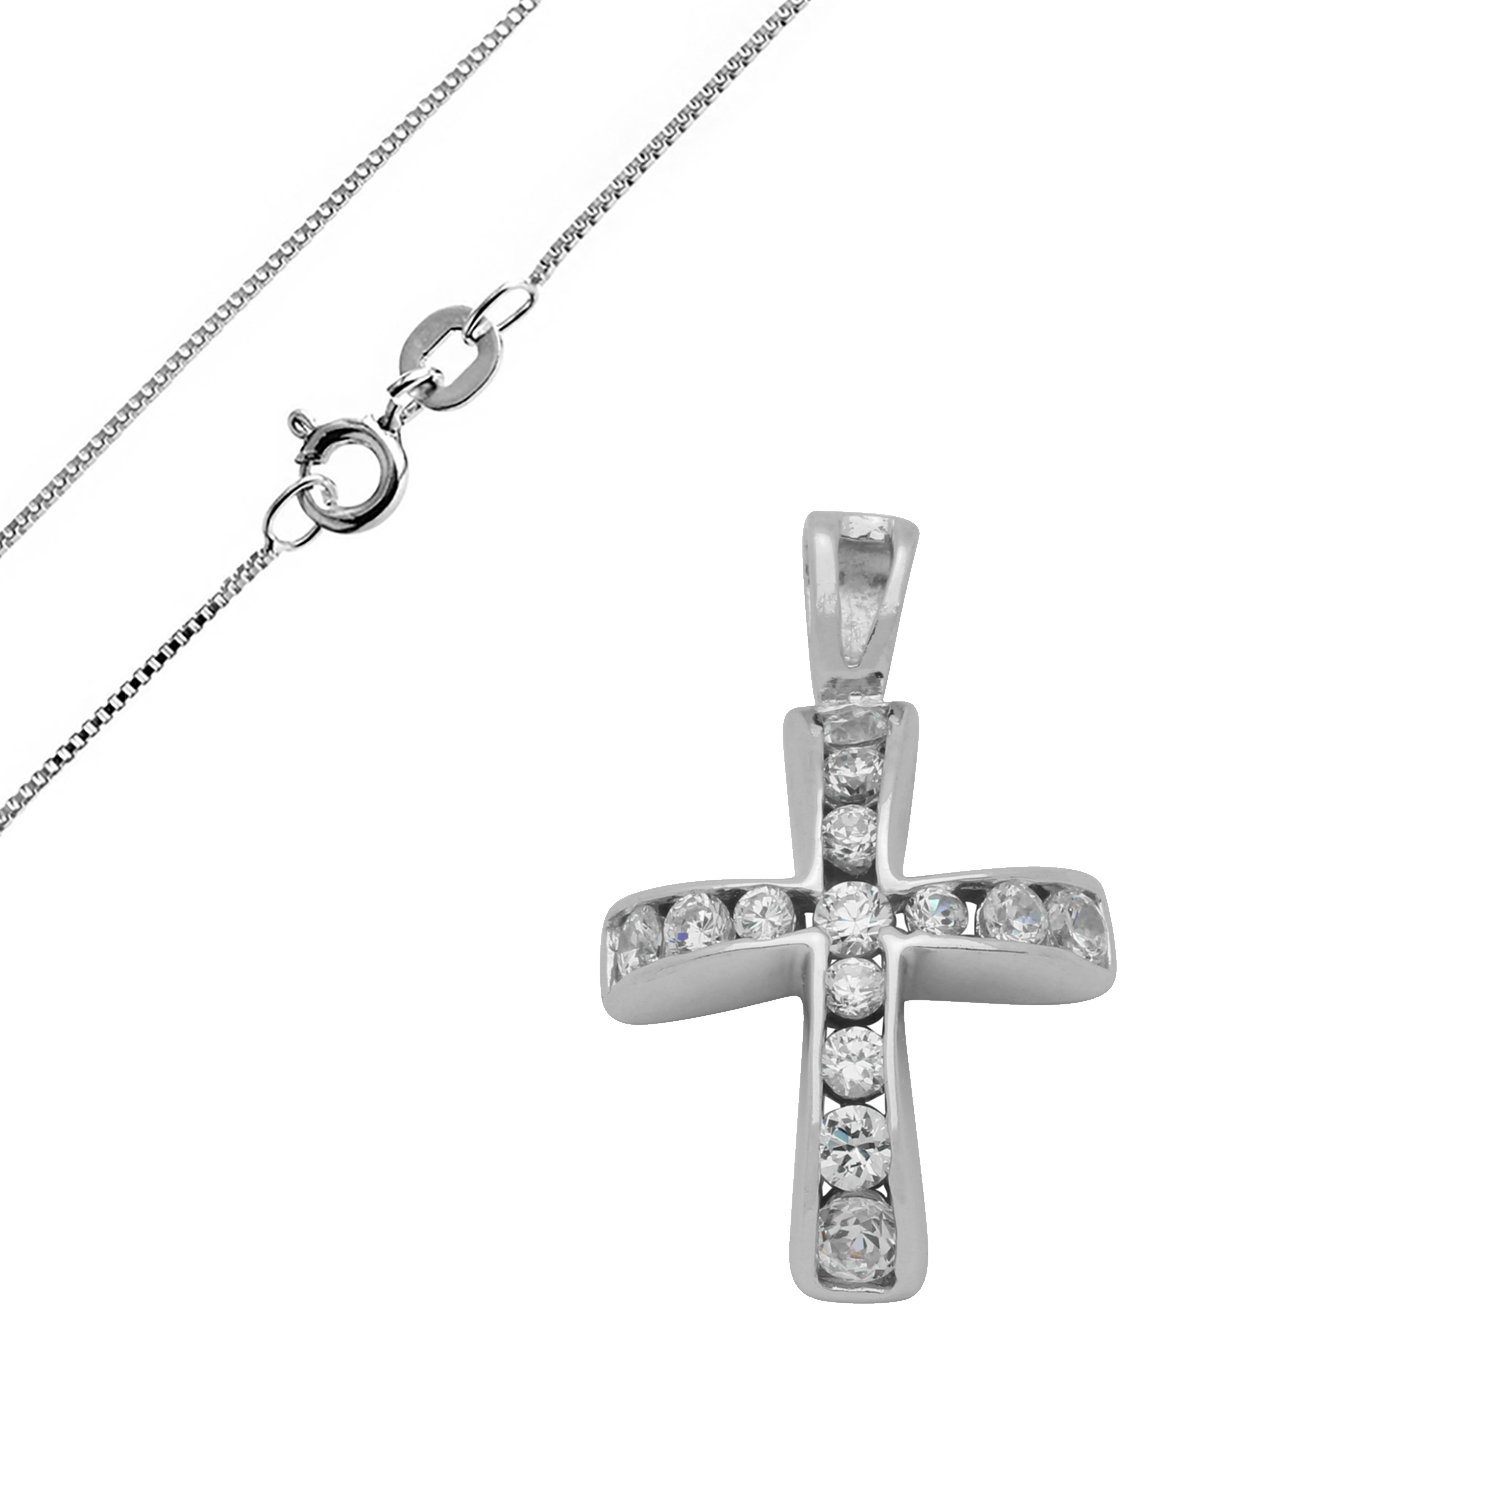 Cross with round Clear CZ Accent JewelryVolt 925 Sterling Silver CZ Pendant